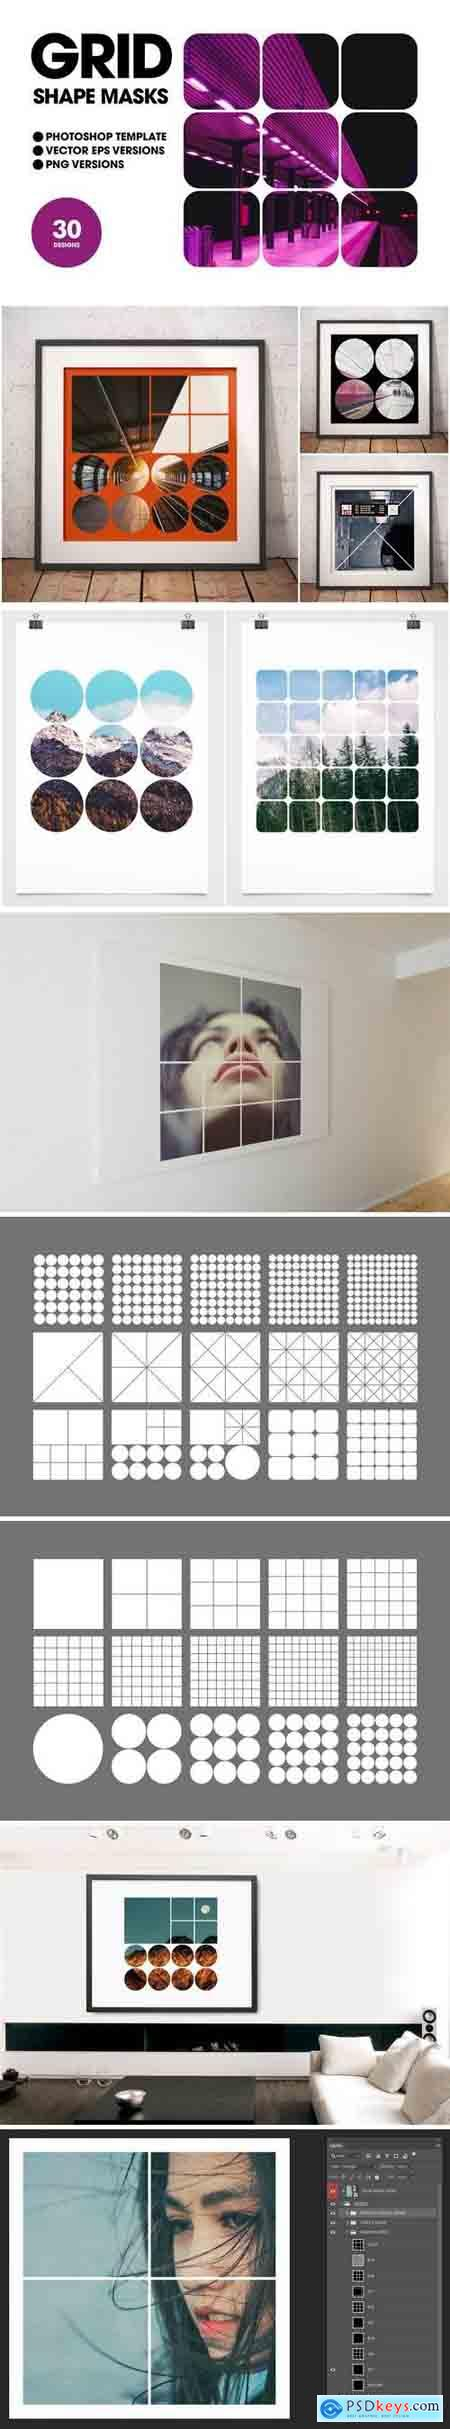 Grid Shape Masks